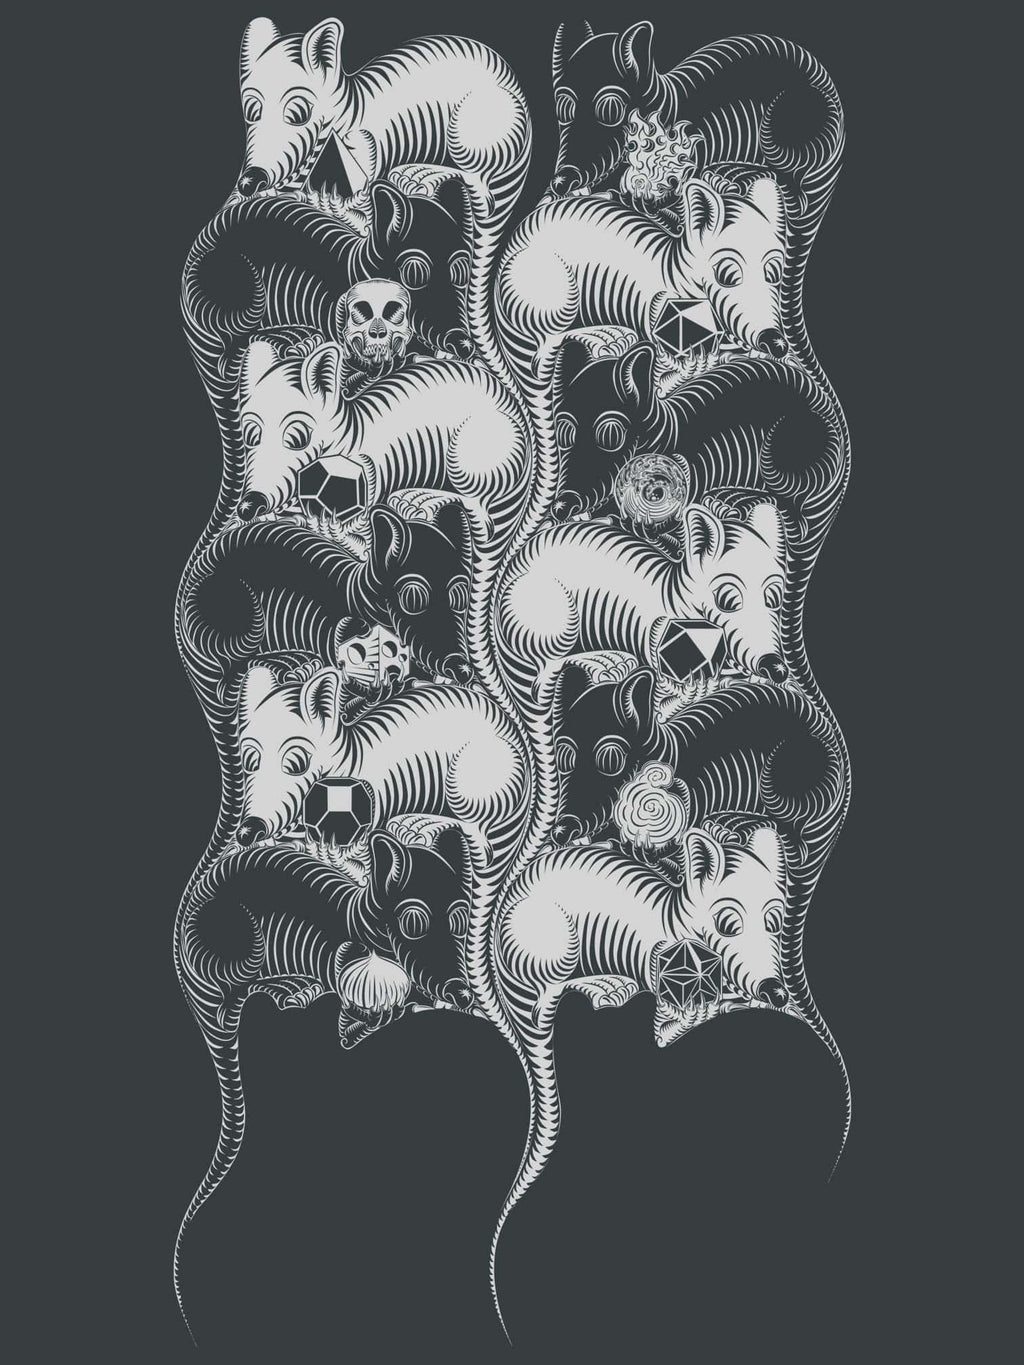 12 Mice Made To Order Men T-Shirt - Light Charcoal